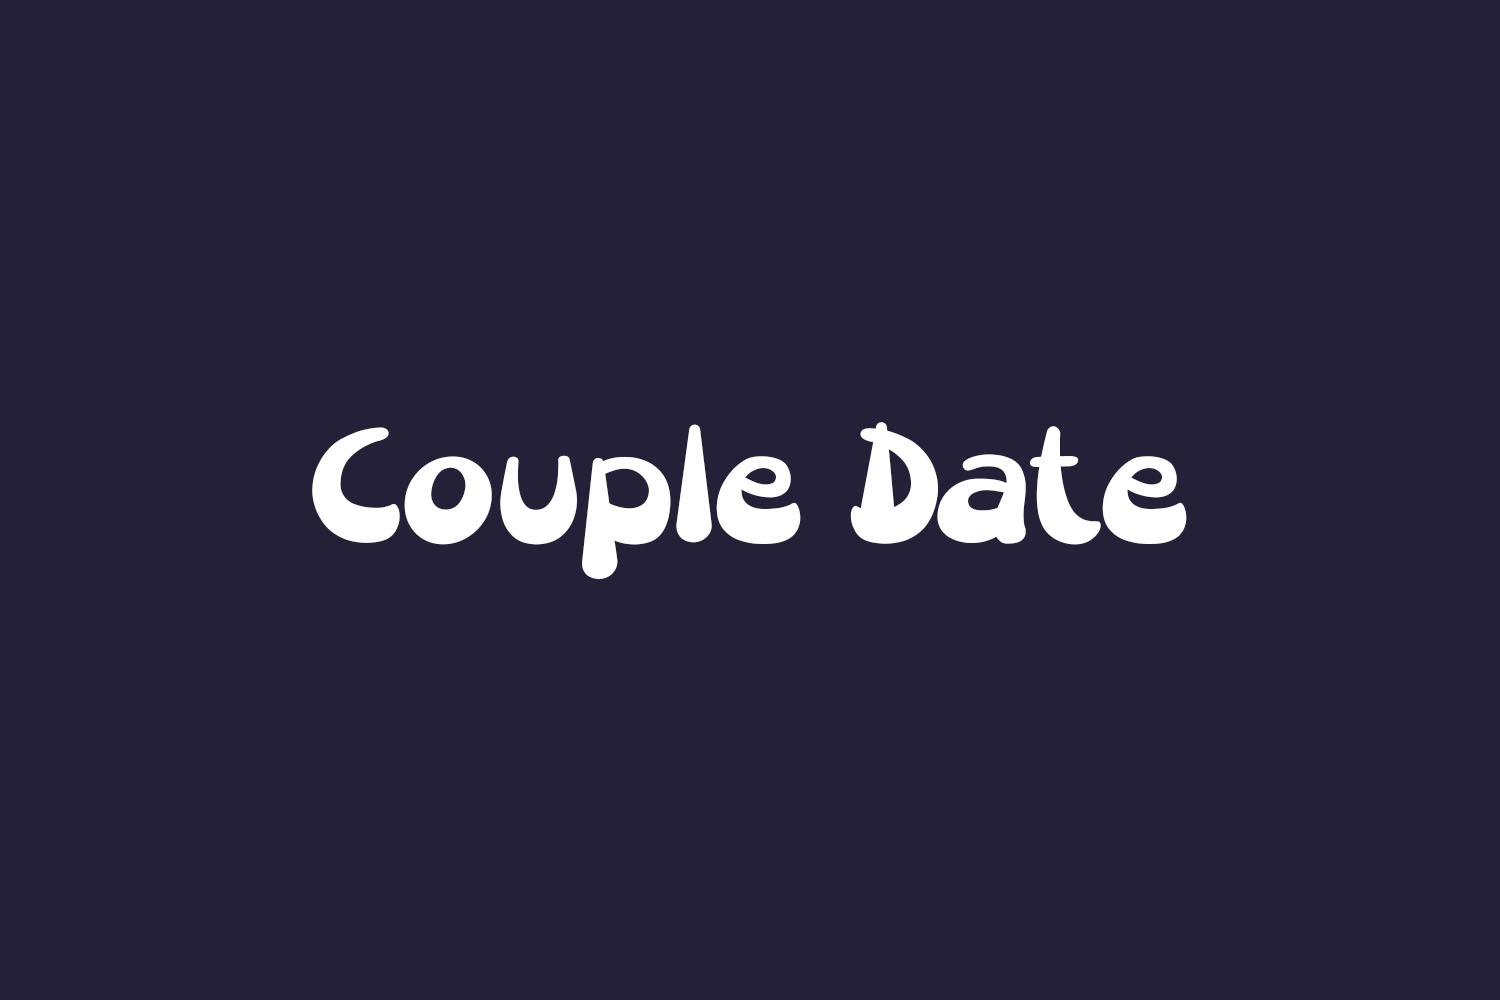 Couple Date Free Font